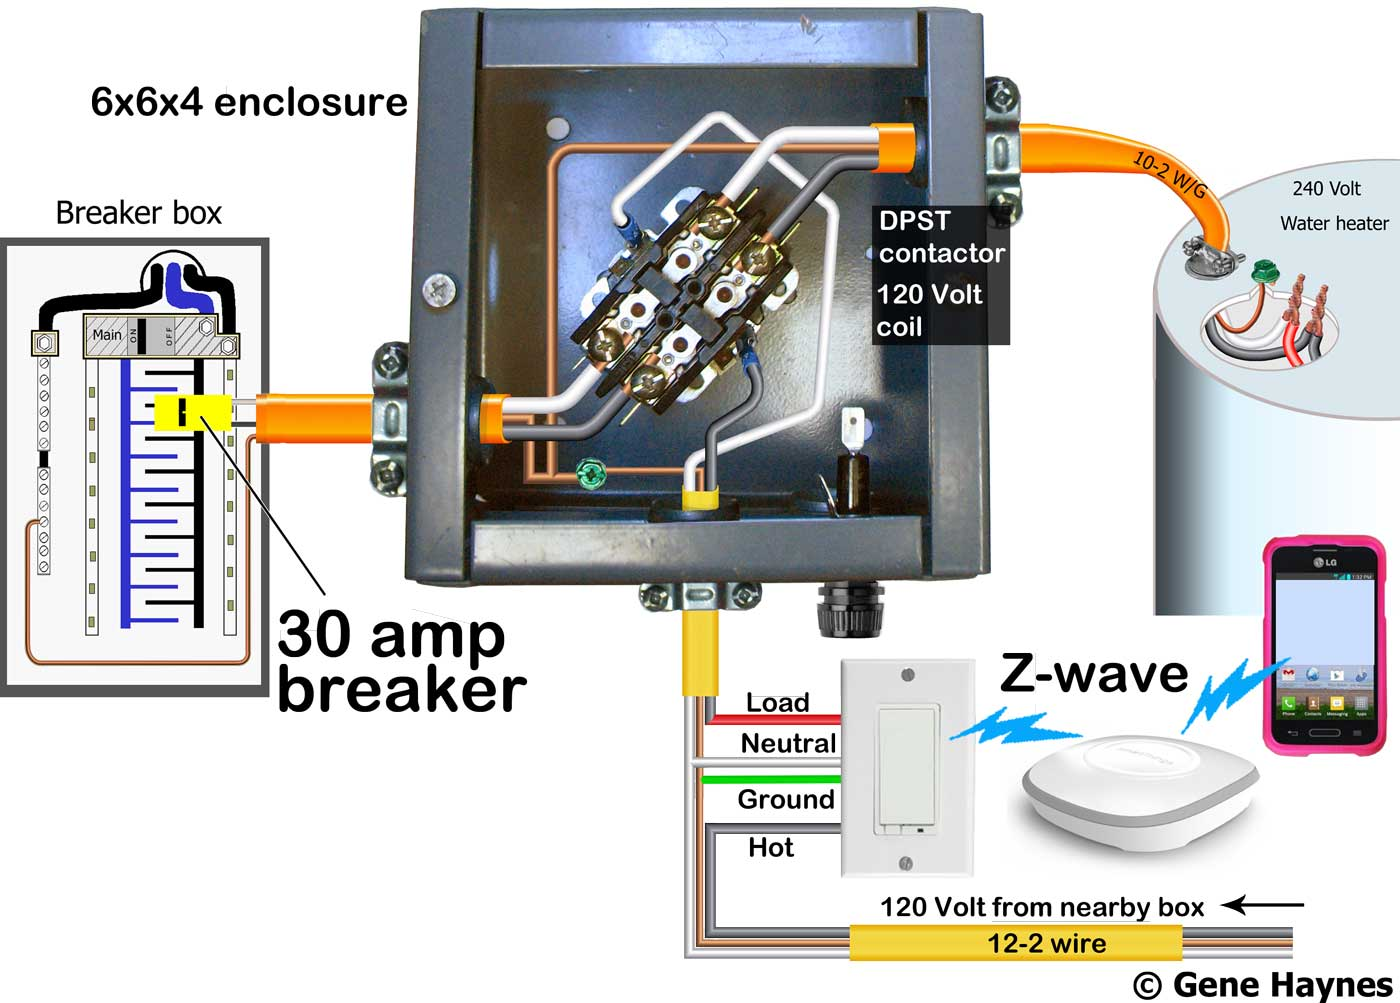 hight resolution of larger image control 240 volt with x10 wifi or z wave requires